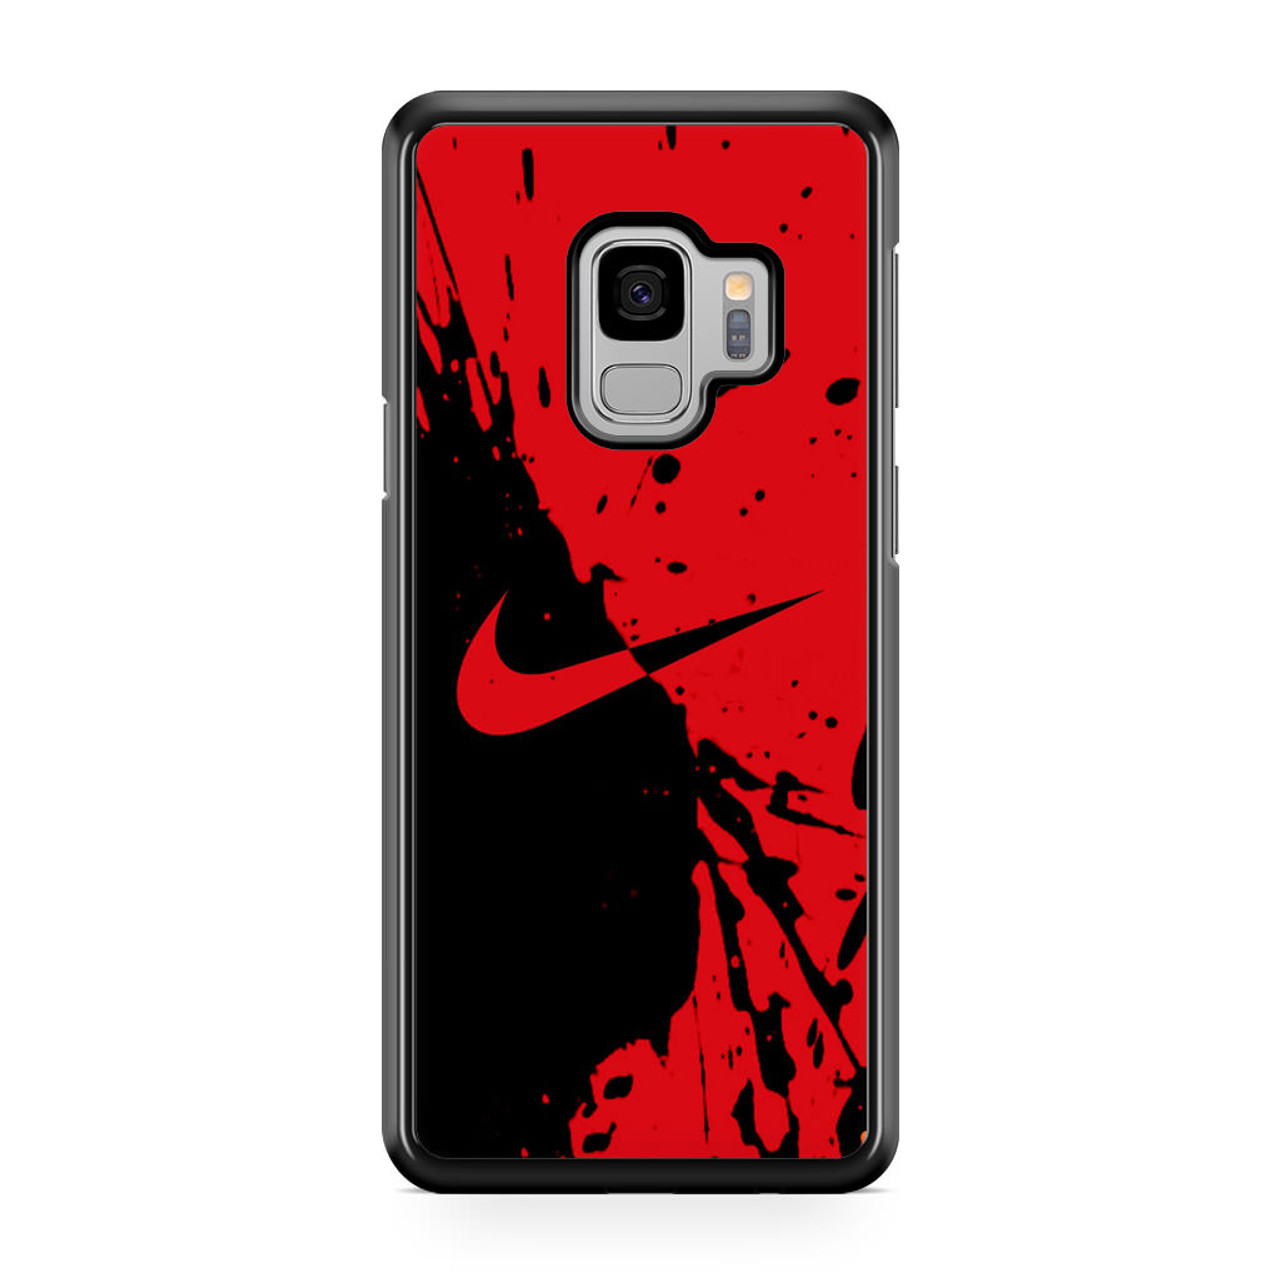 new product 1a09d 0c640 Nike Red and Black Samsung Galaxy S9 Case